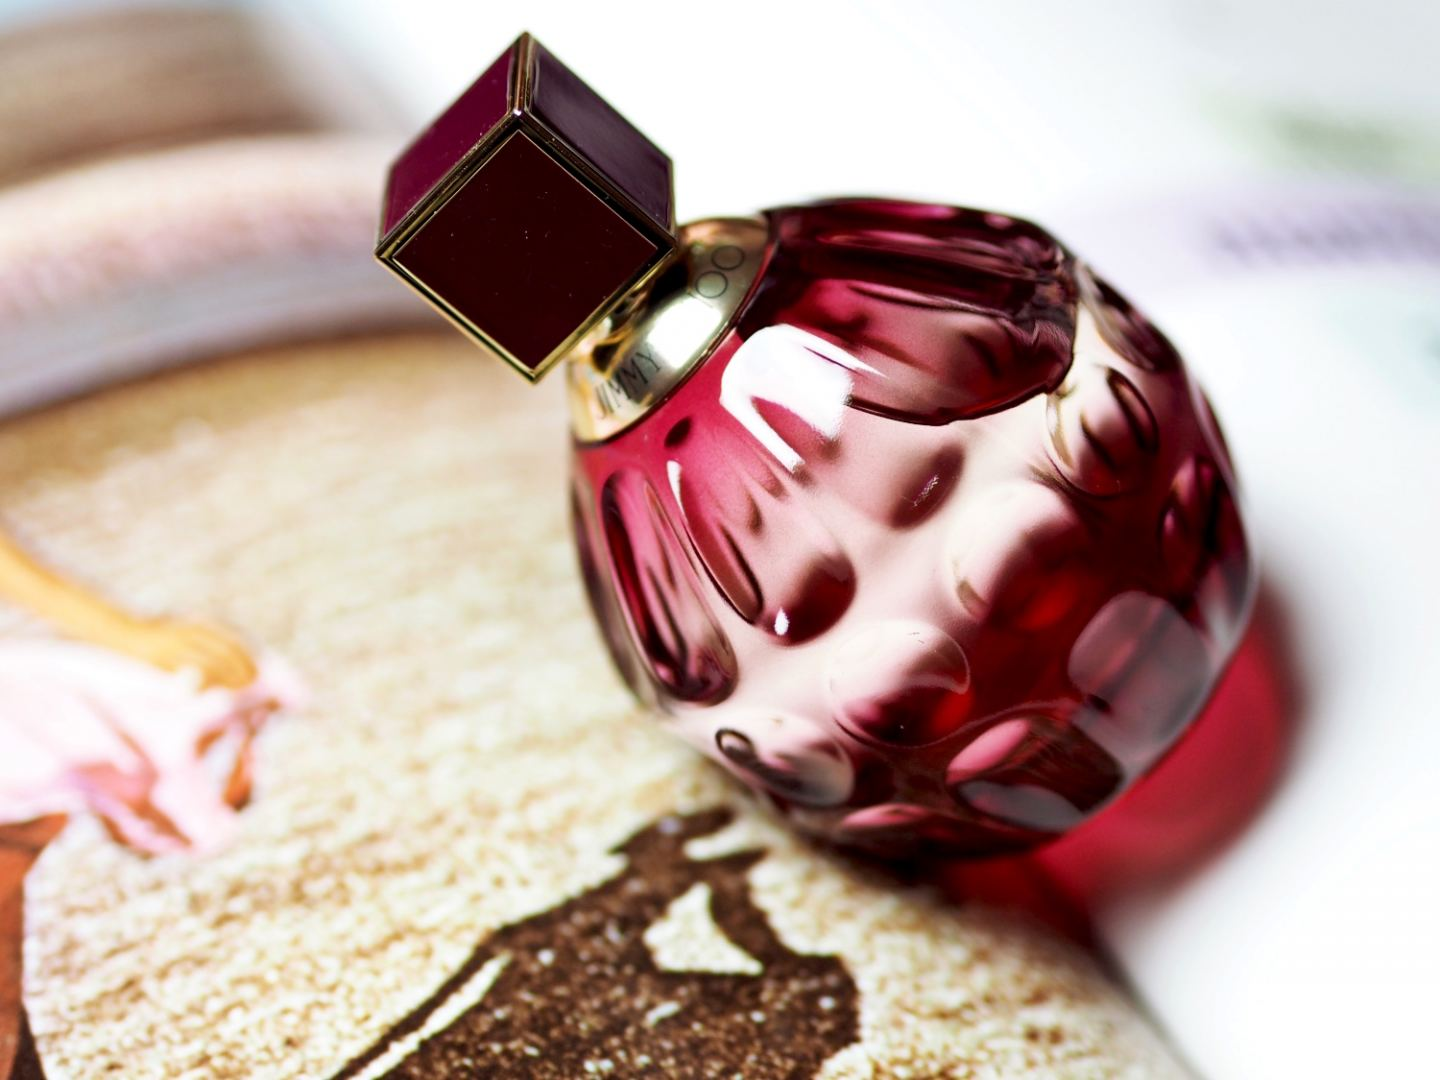 Jimmy Choo 'Fever' perfume